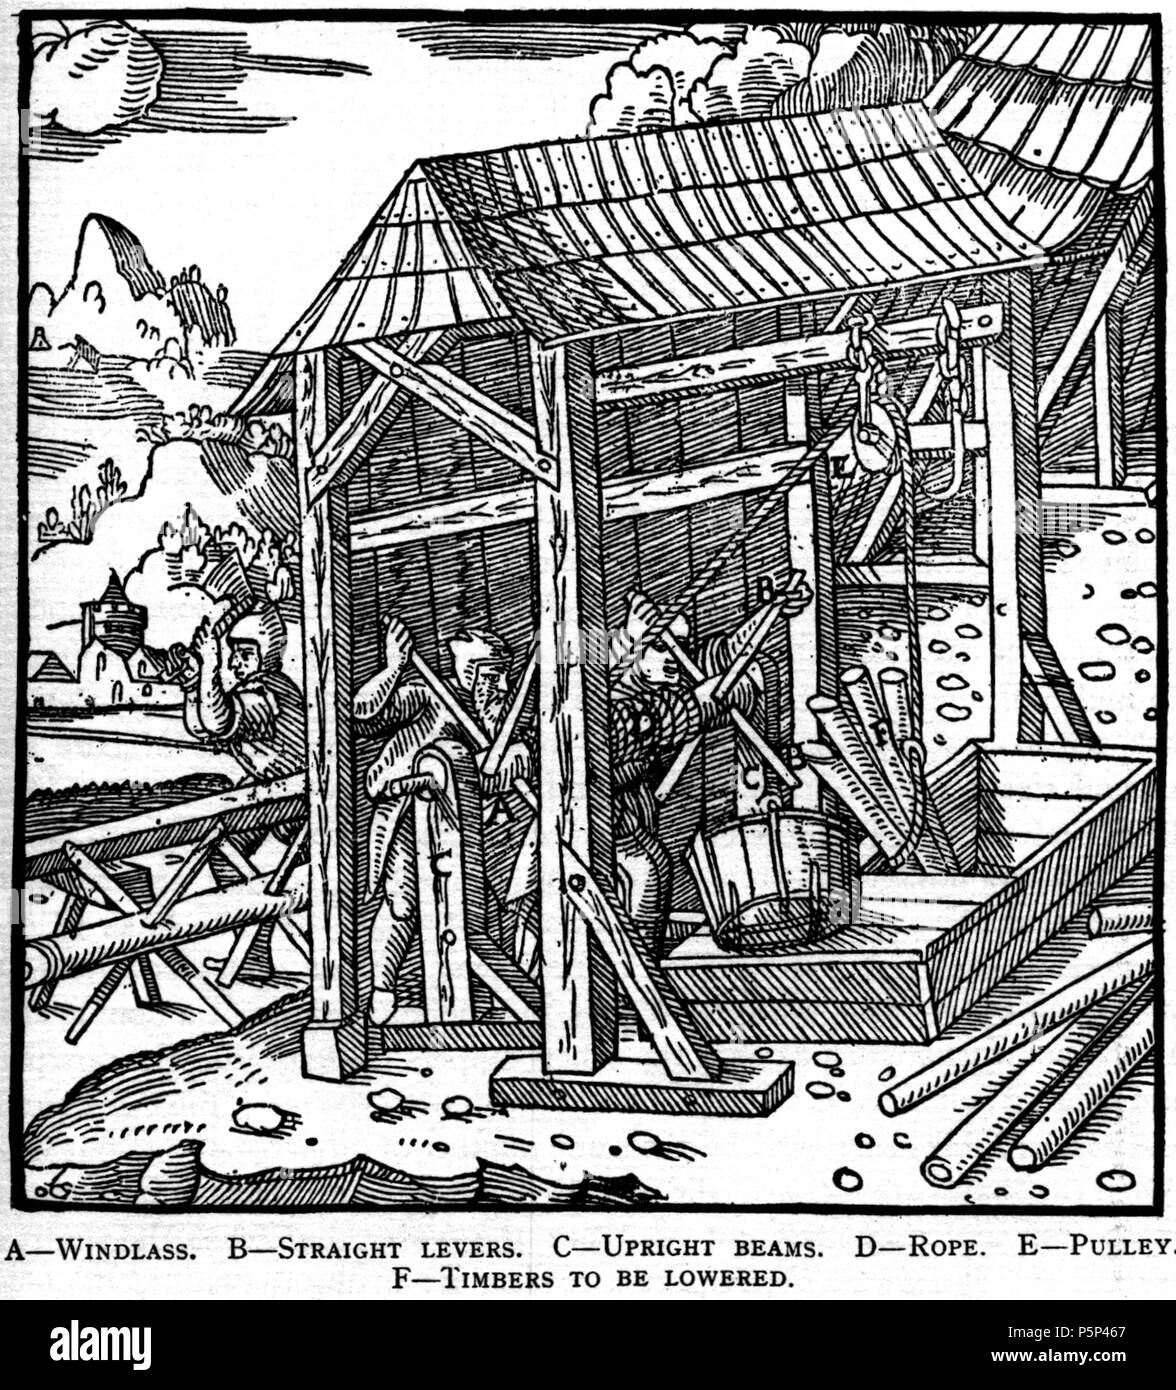 N/A. Woodcut illustration from De re metallica by Georgius Agricola. This is a 300dpi scan from the 1950 Dover edition of the 1913 Hoover translation of the 1556 reference. The Dover edition has slightly smaller size prints than the Hoover (which is a rare book). The woodcuts were recreated for the 1913 printing. Filenames (except for the title page) indicate the chapter (2, 3, 5, etc.) followed by the sequential number of the illustration. 2 May 2005, 07:06:16. TCO (talk) 223 Book6-19 - Stock Image